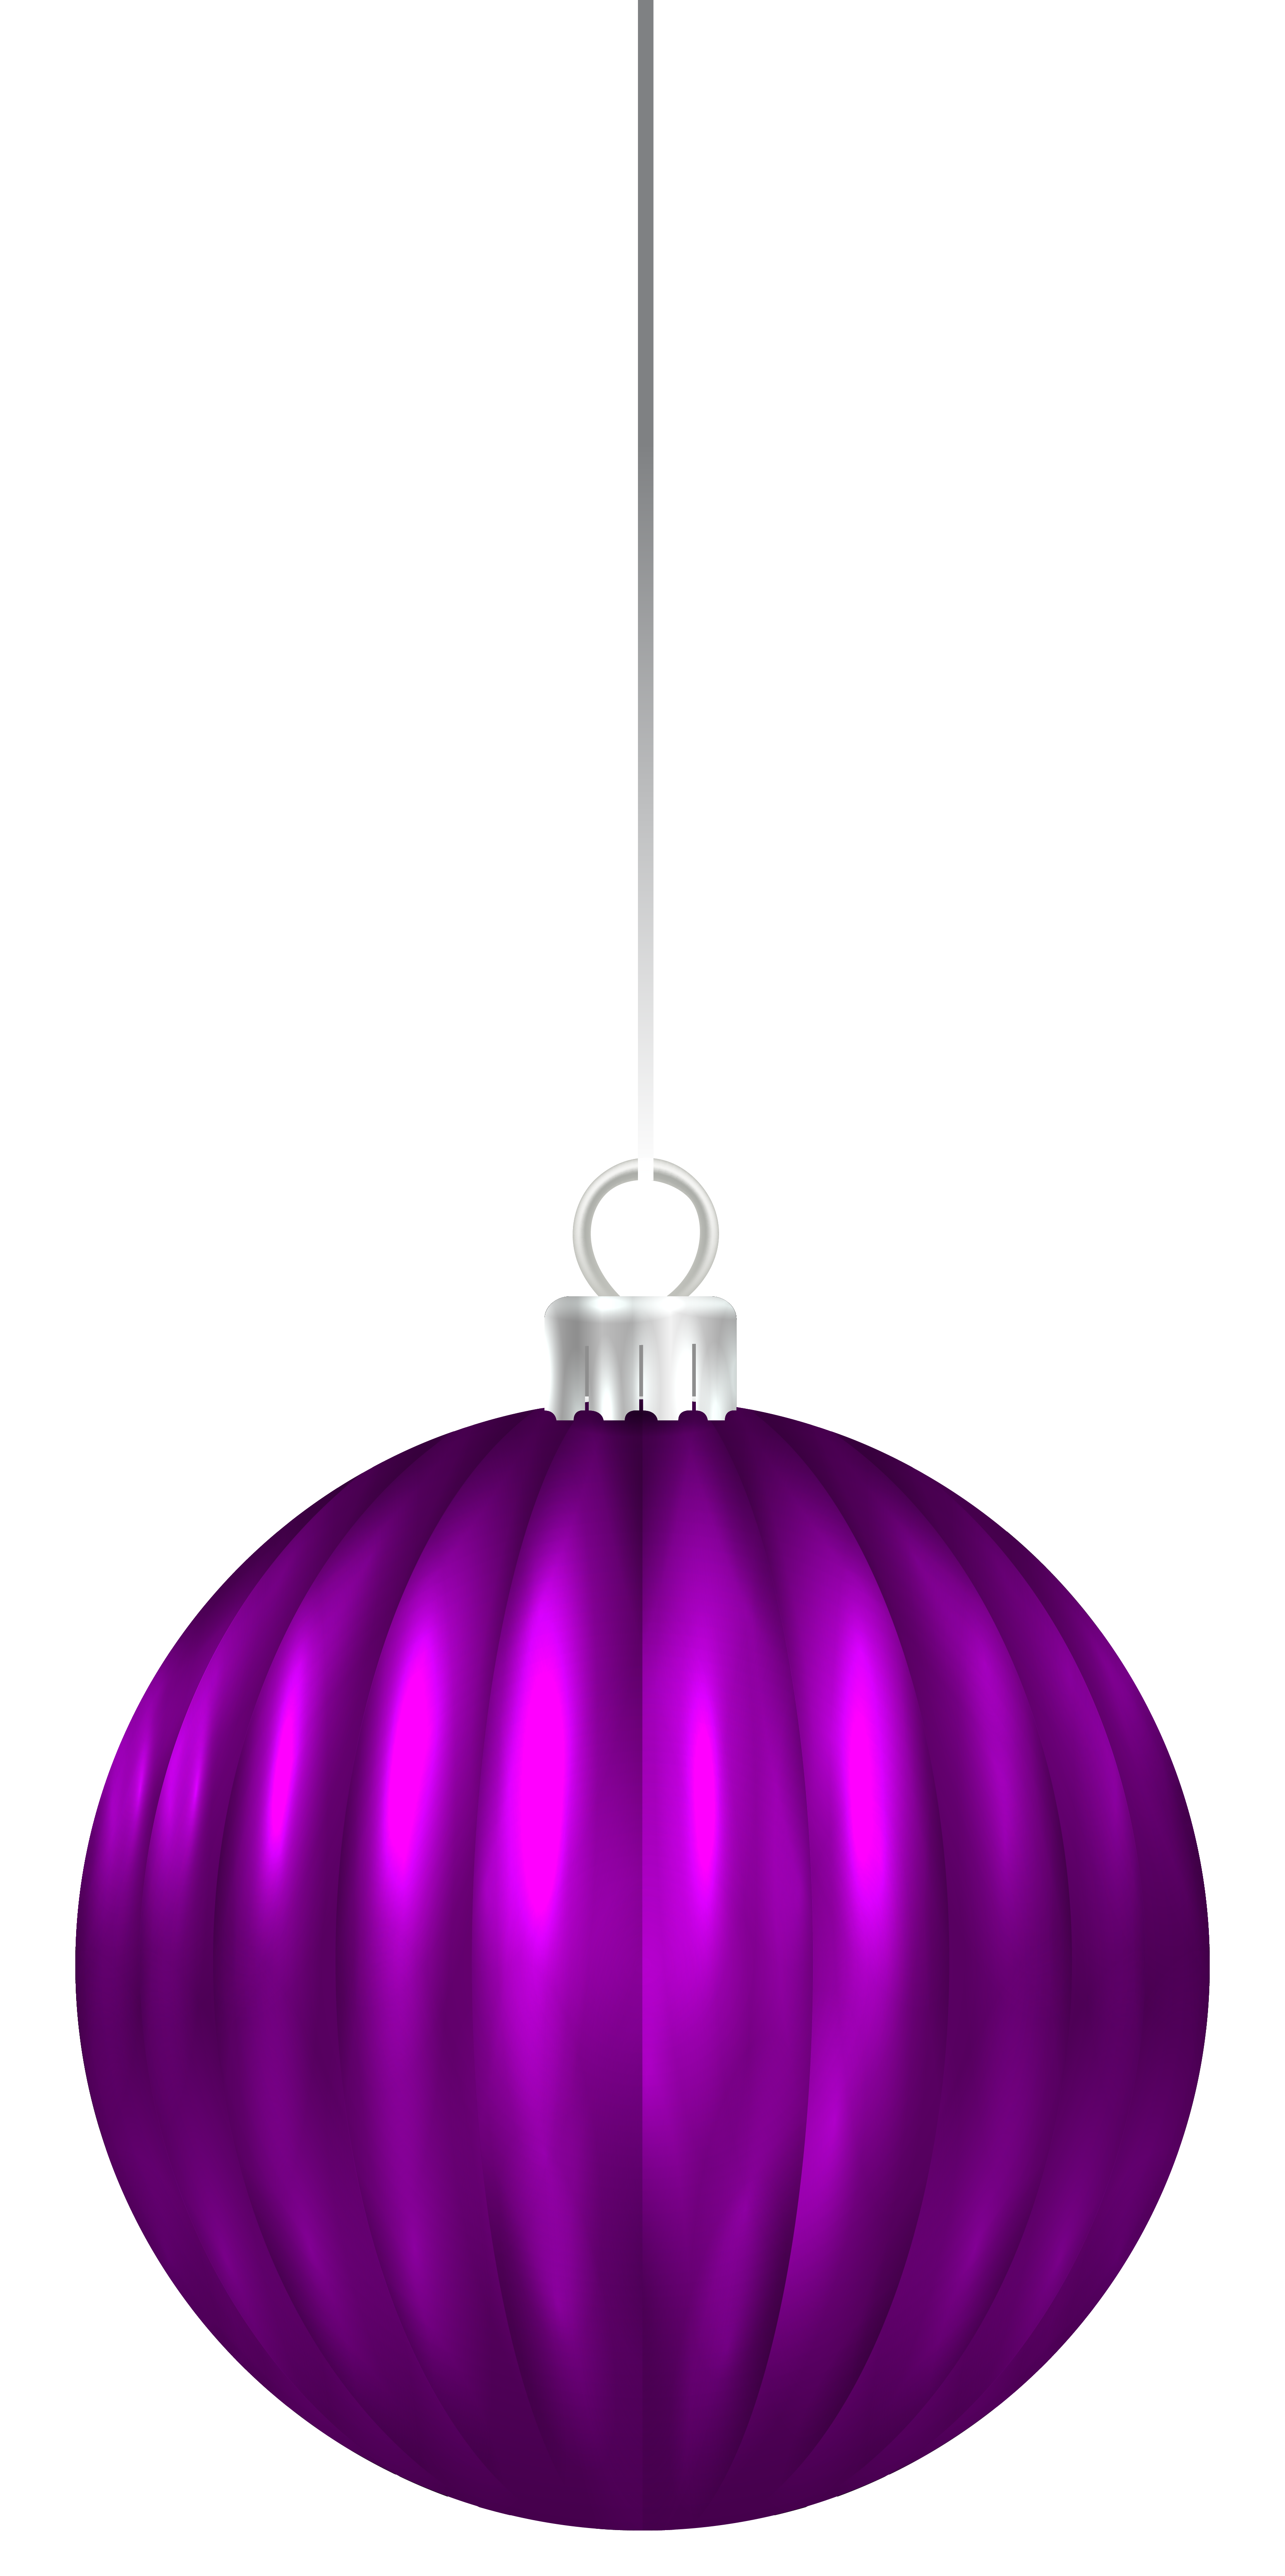 Clipart christmas purple. Ball ornament png clip